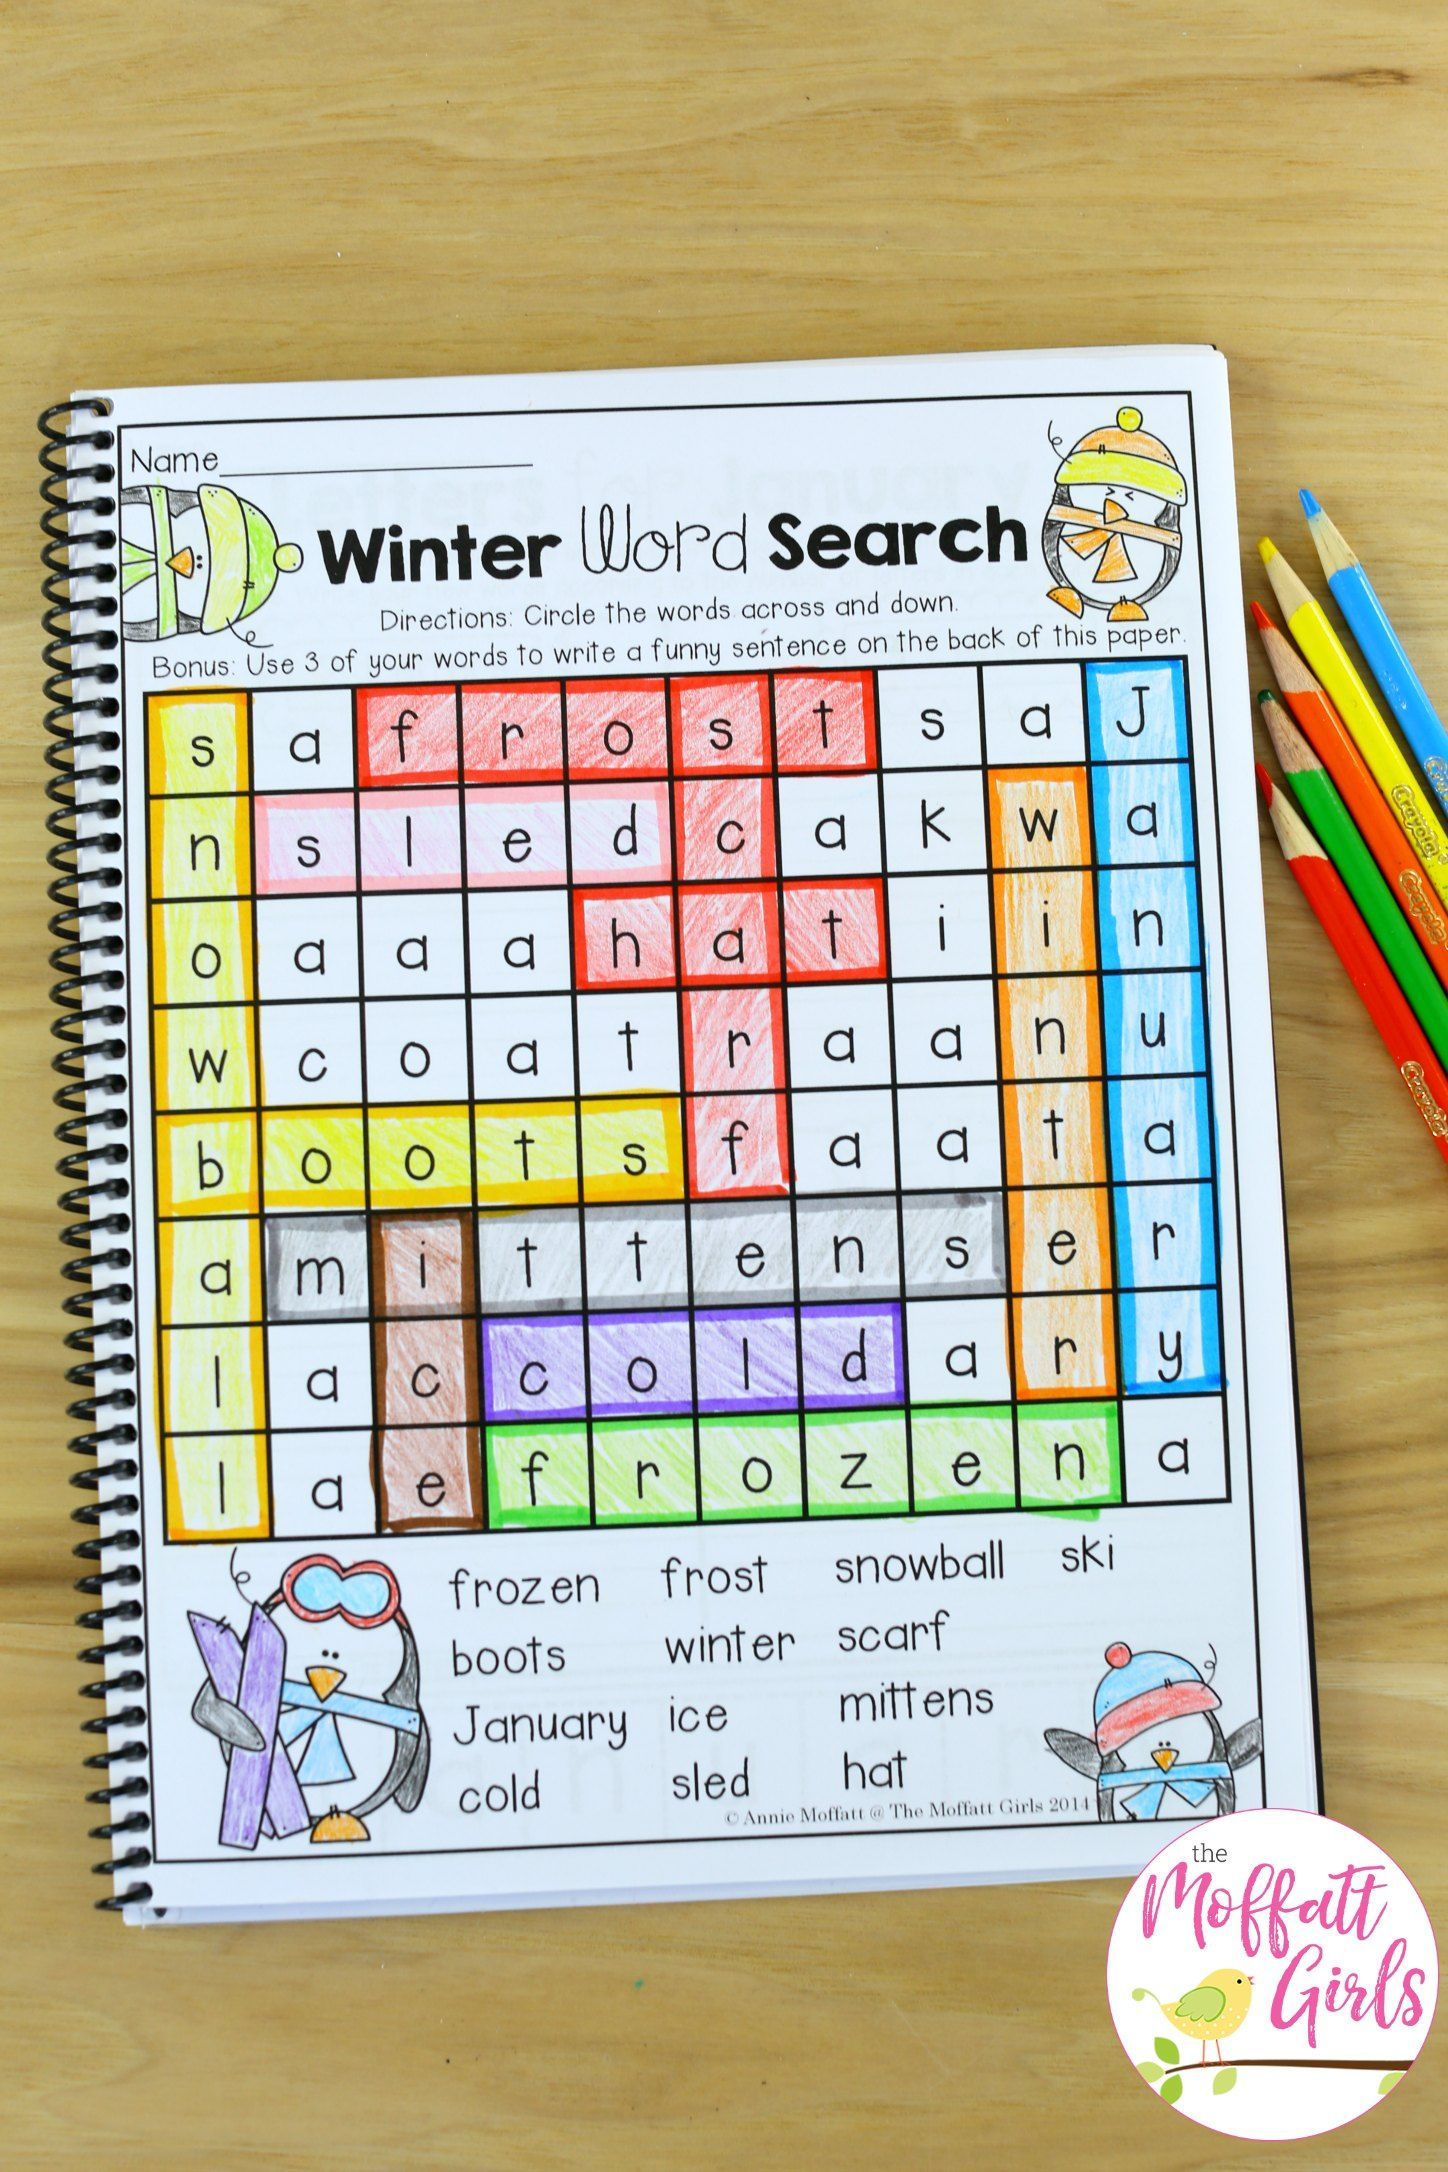 January Learning Resources With No Prep With Images